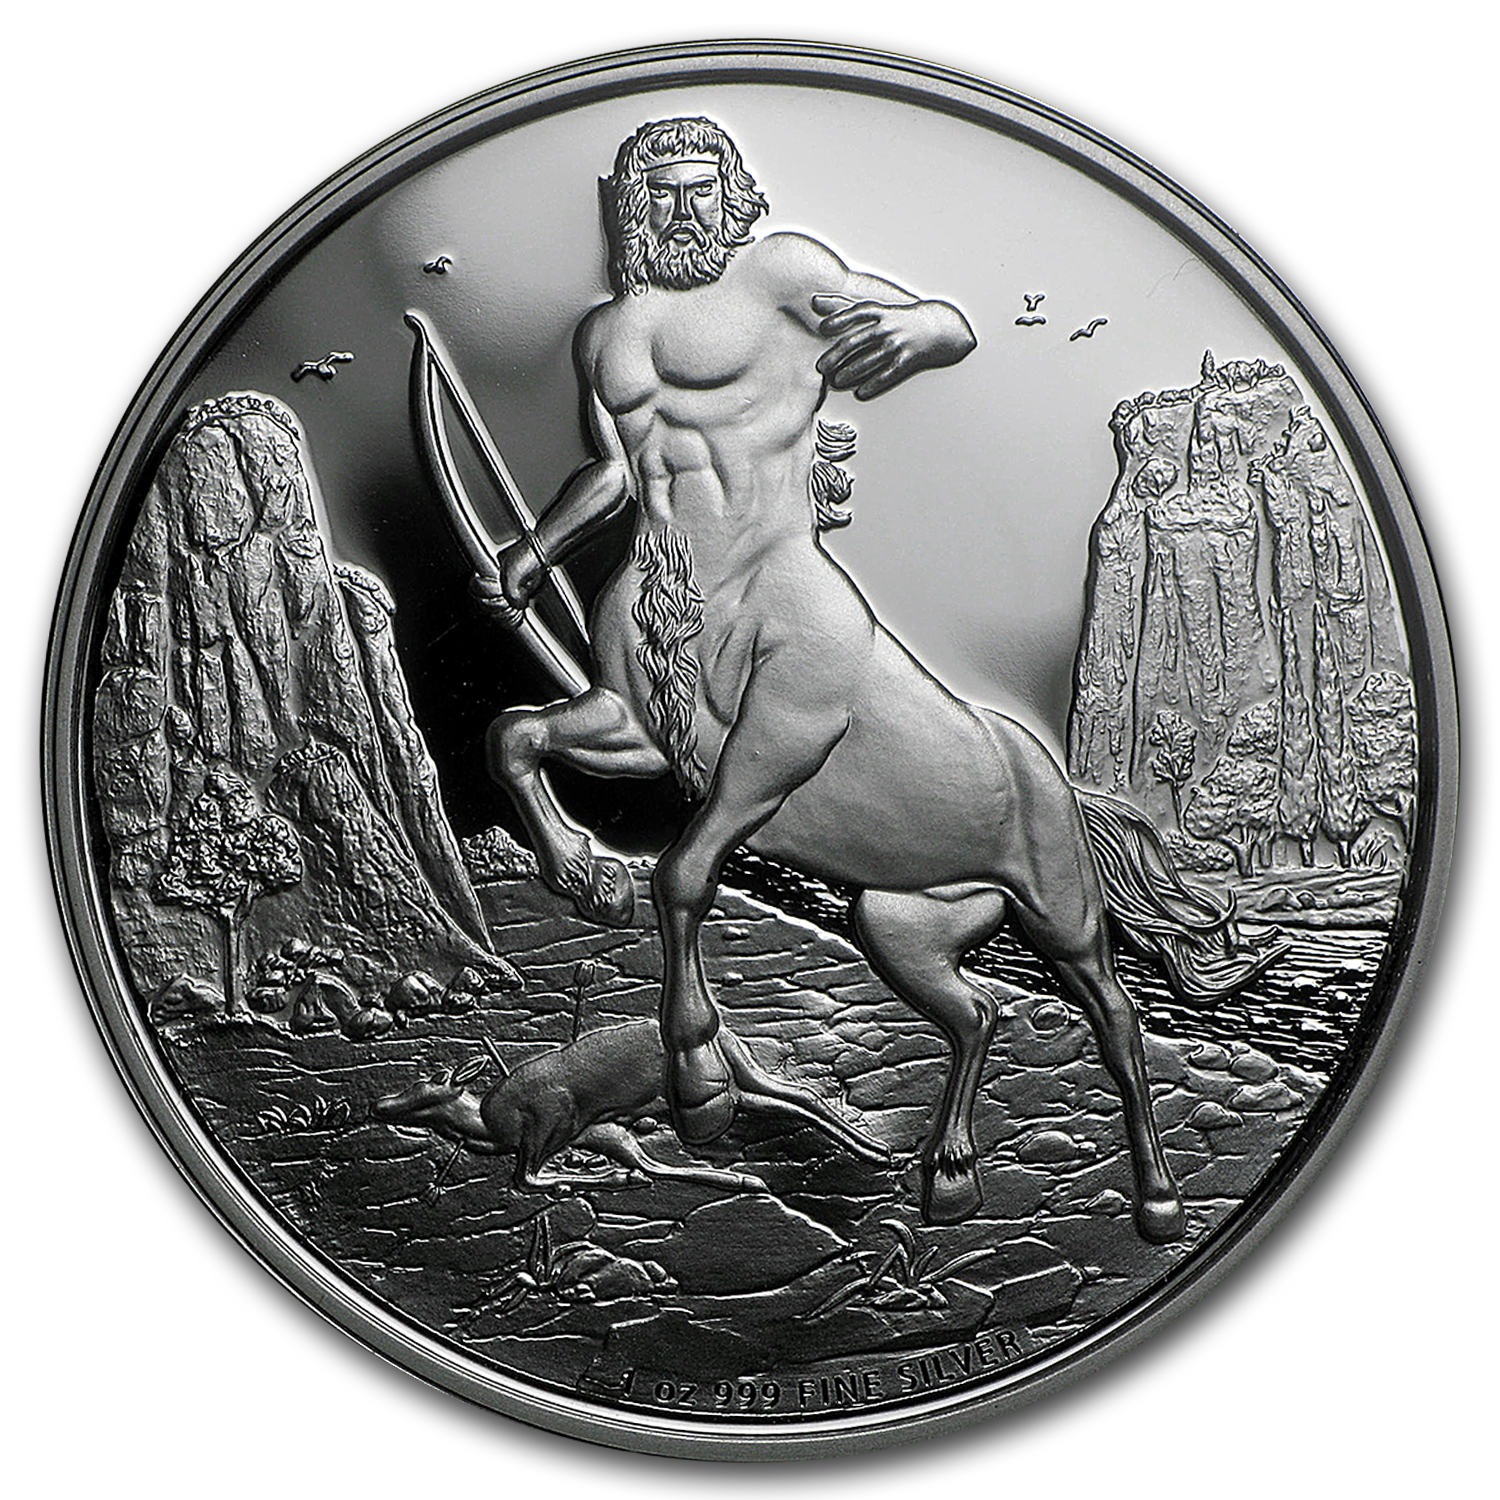 2016 Niue 1 oz Silver $2 Creatures of Greek Mythology Centaur